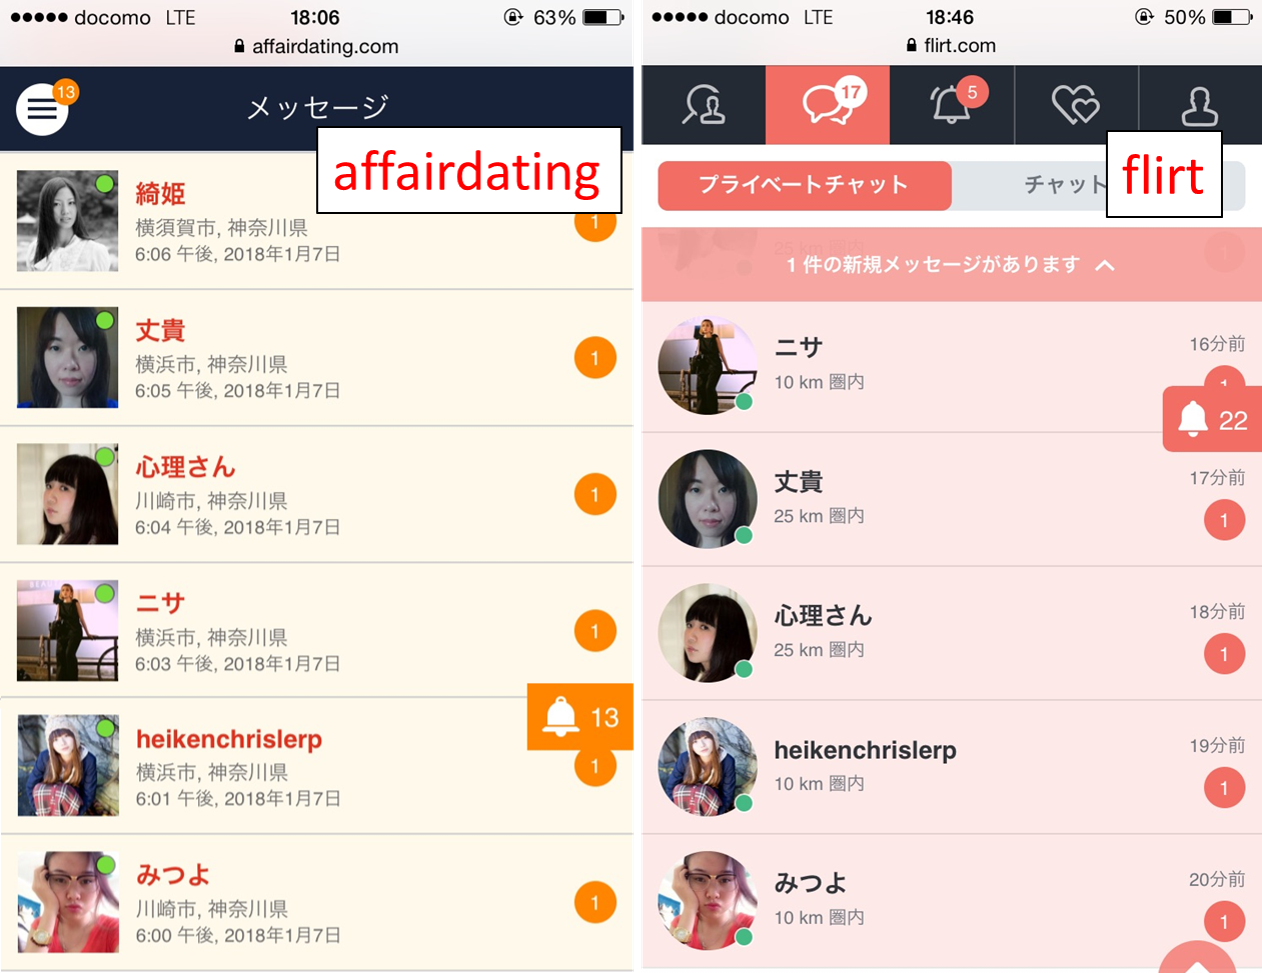 affairdatingの利用者